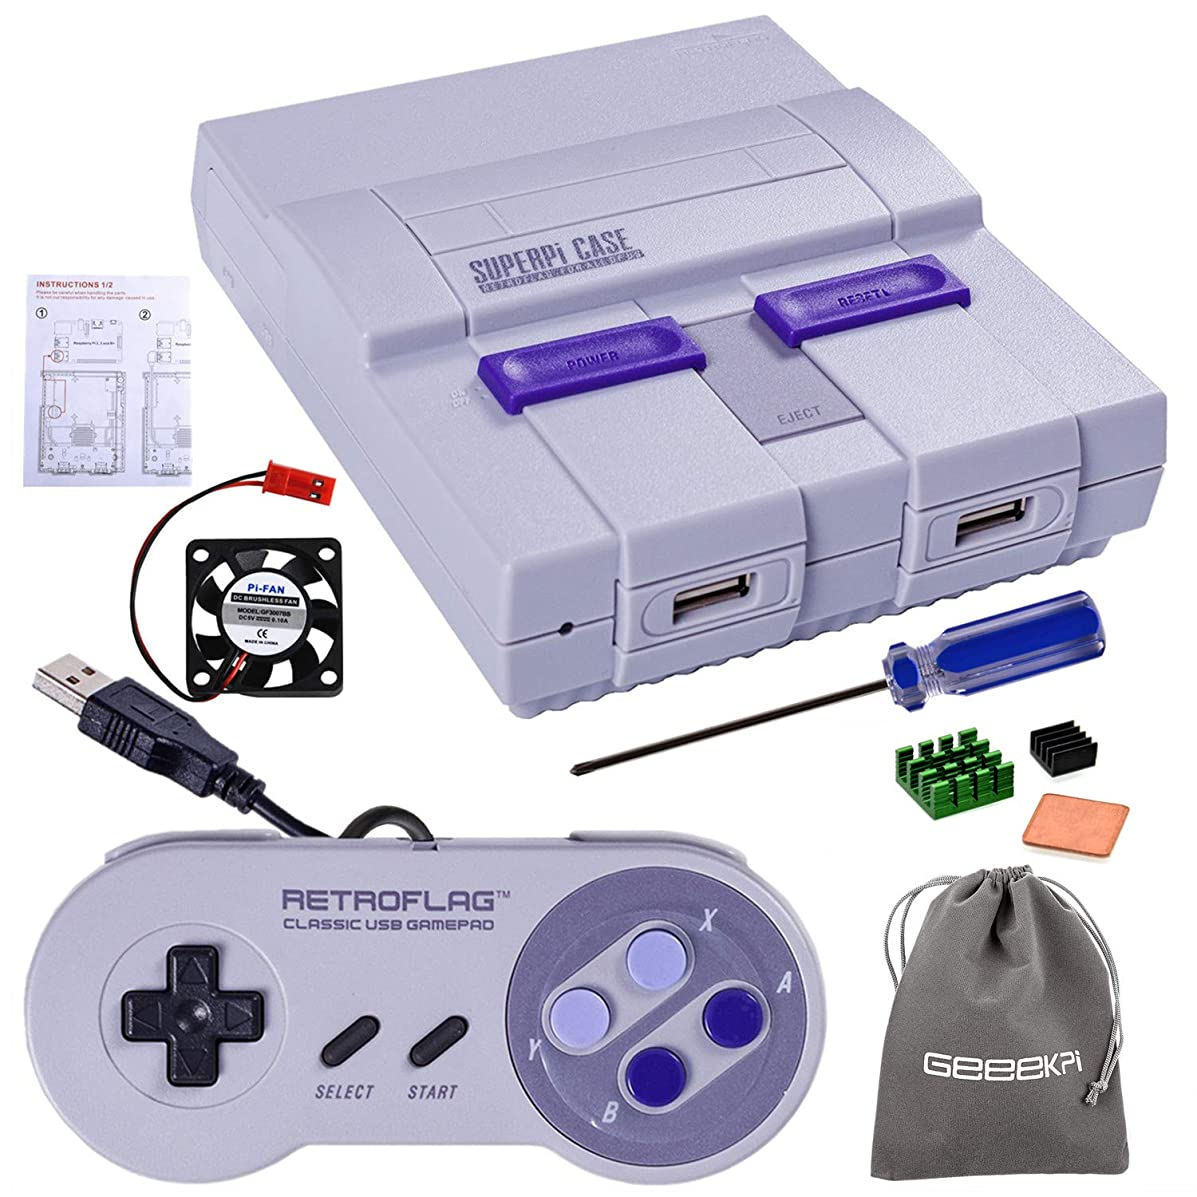 Retroflag SUPERPI CASE UCase NESPI CASE SNES Case with Functional Power Button and Reset Button with Raspberry Pi Heatsink Fan Flannel Bag for RetroPie Raspberry Pi 3 B+ & Raspberry Pi 3/2 Model B/B+